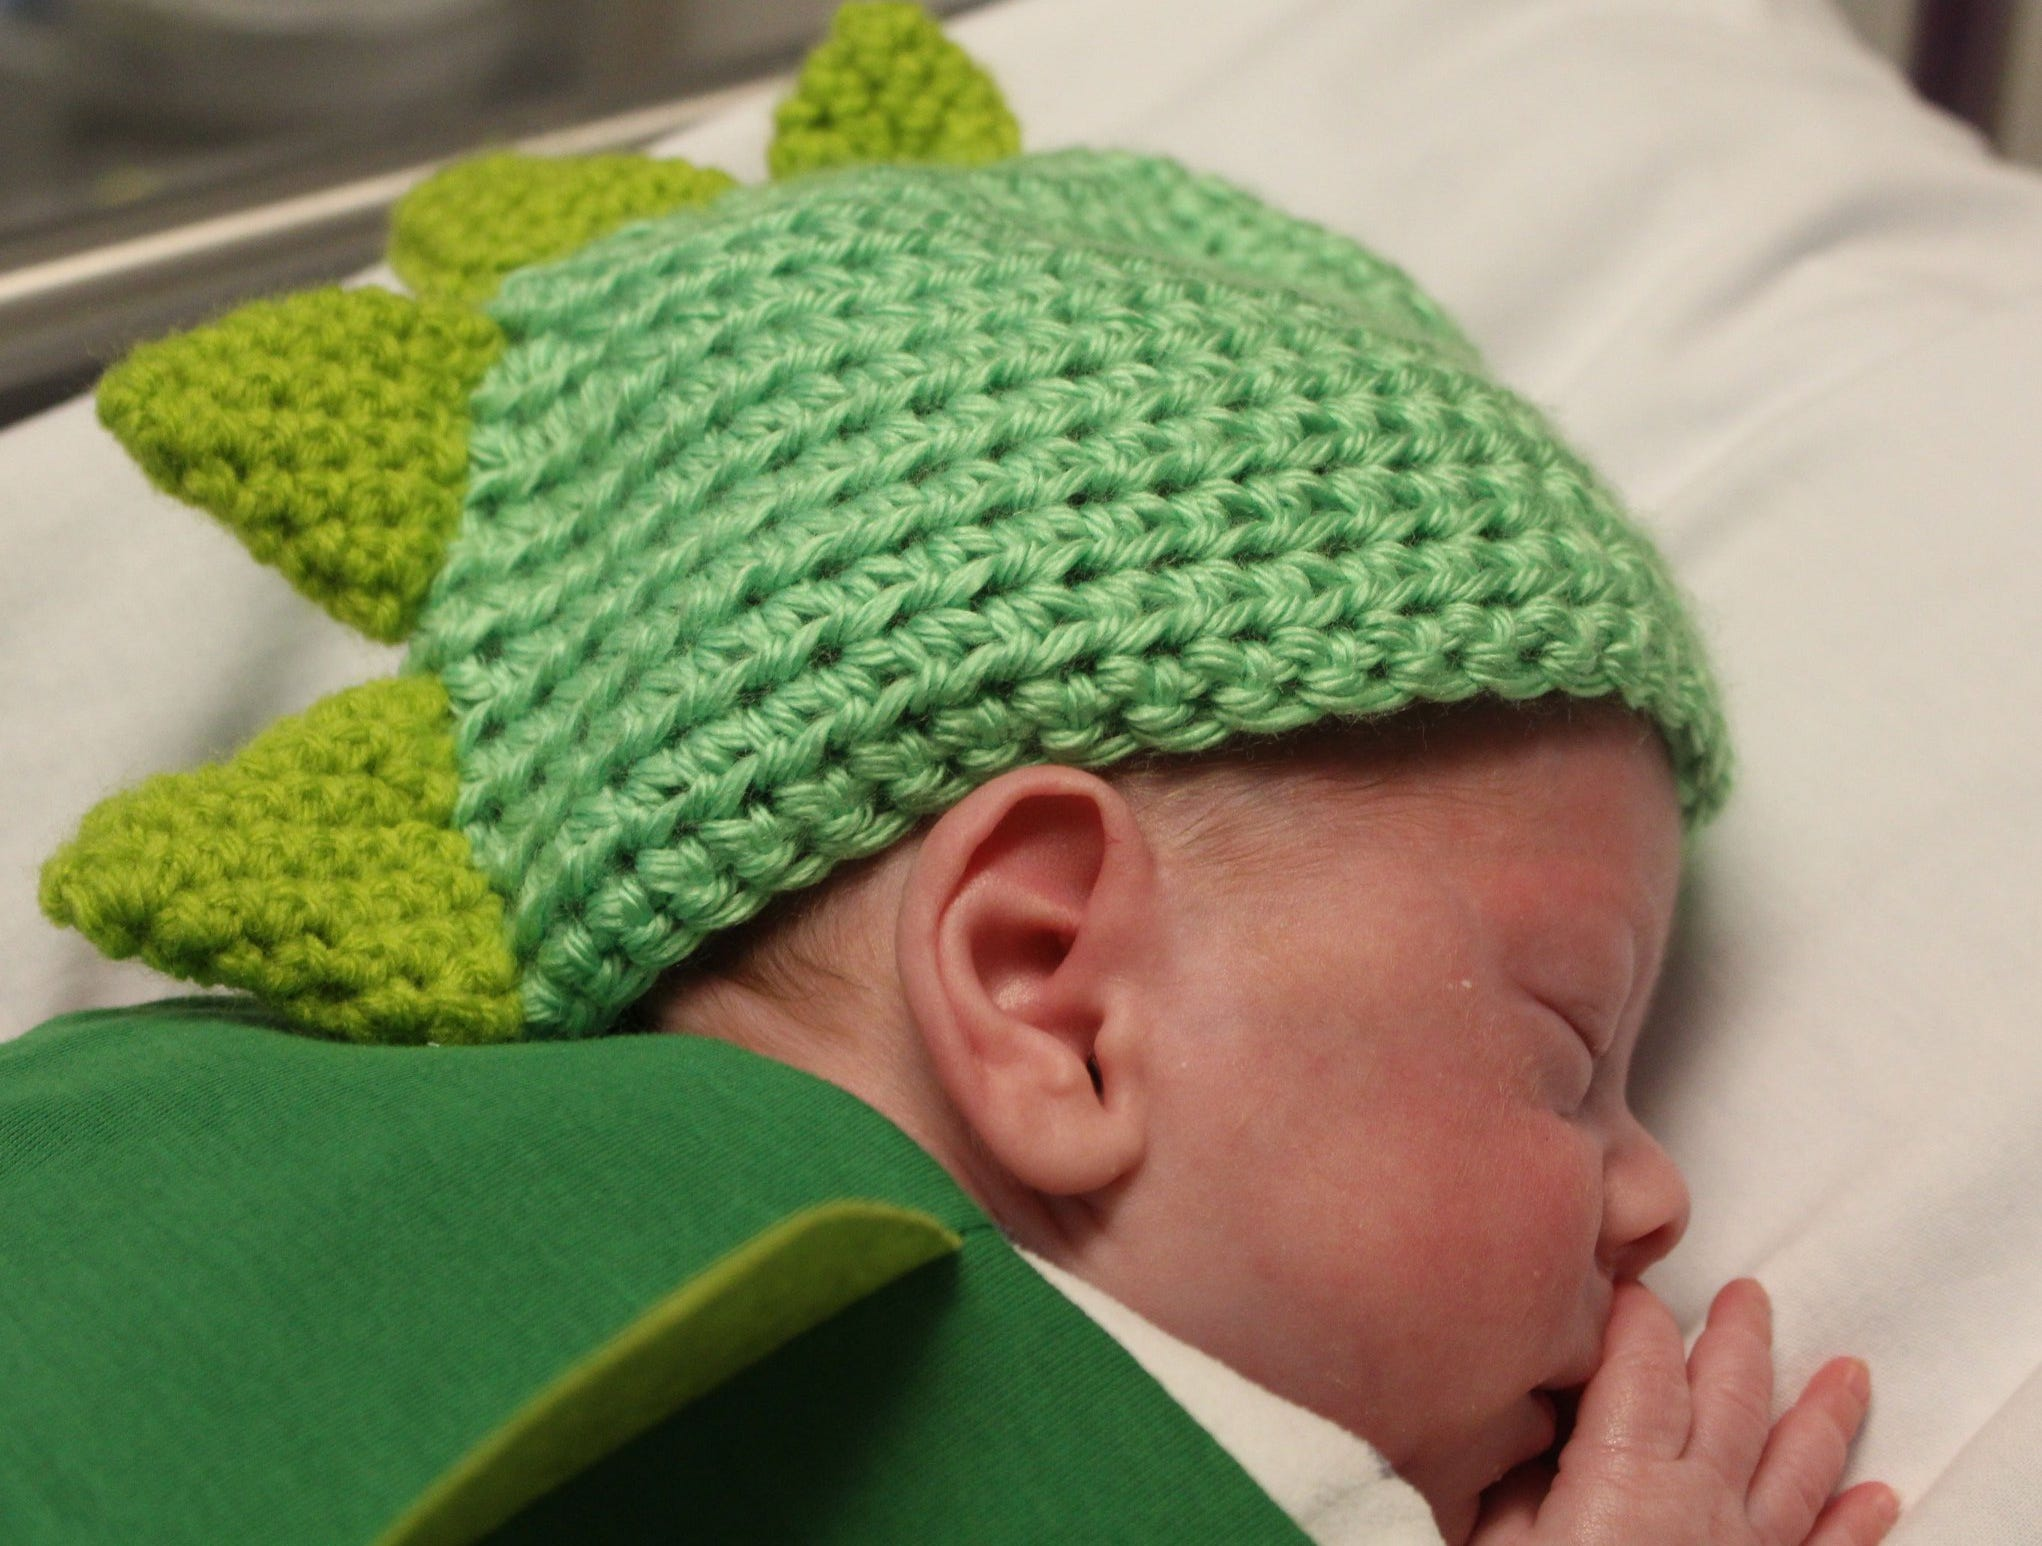 Brecken Thoennes was born Aug. 16. Babies in the Neonatal Intensive Care Unit sported handmade costumes and crocheted hats, donated by volunteers with the March of Dimes on Wednesday, Oct. 31, 2018 at St. Cloud Hospital.